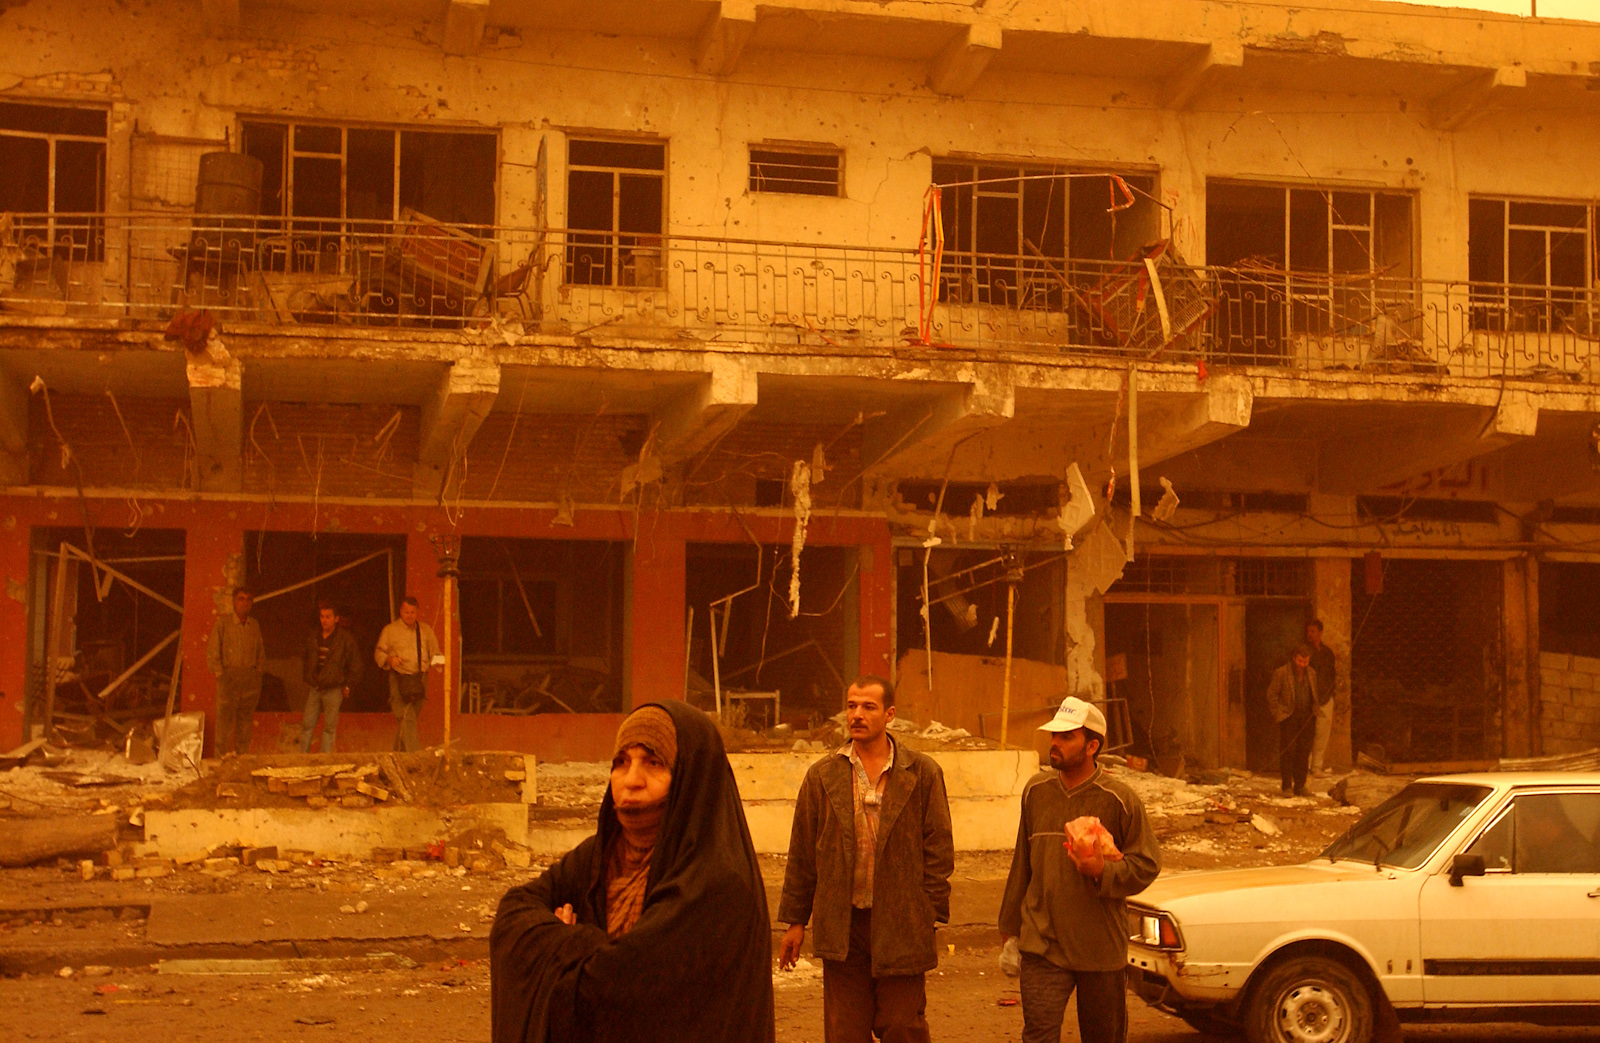 During a sandstorm, Iraqis stand in front of wreckage of a building in the days following the U.S. bombing campaign, Baghdad, Iraq, March 26, 2003.